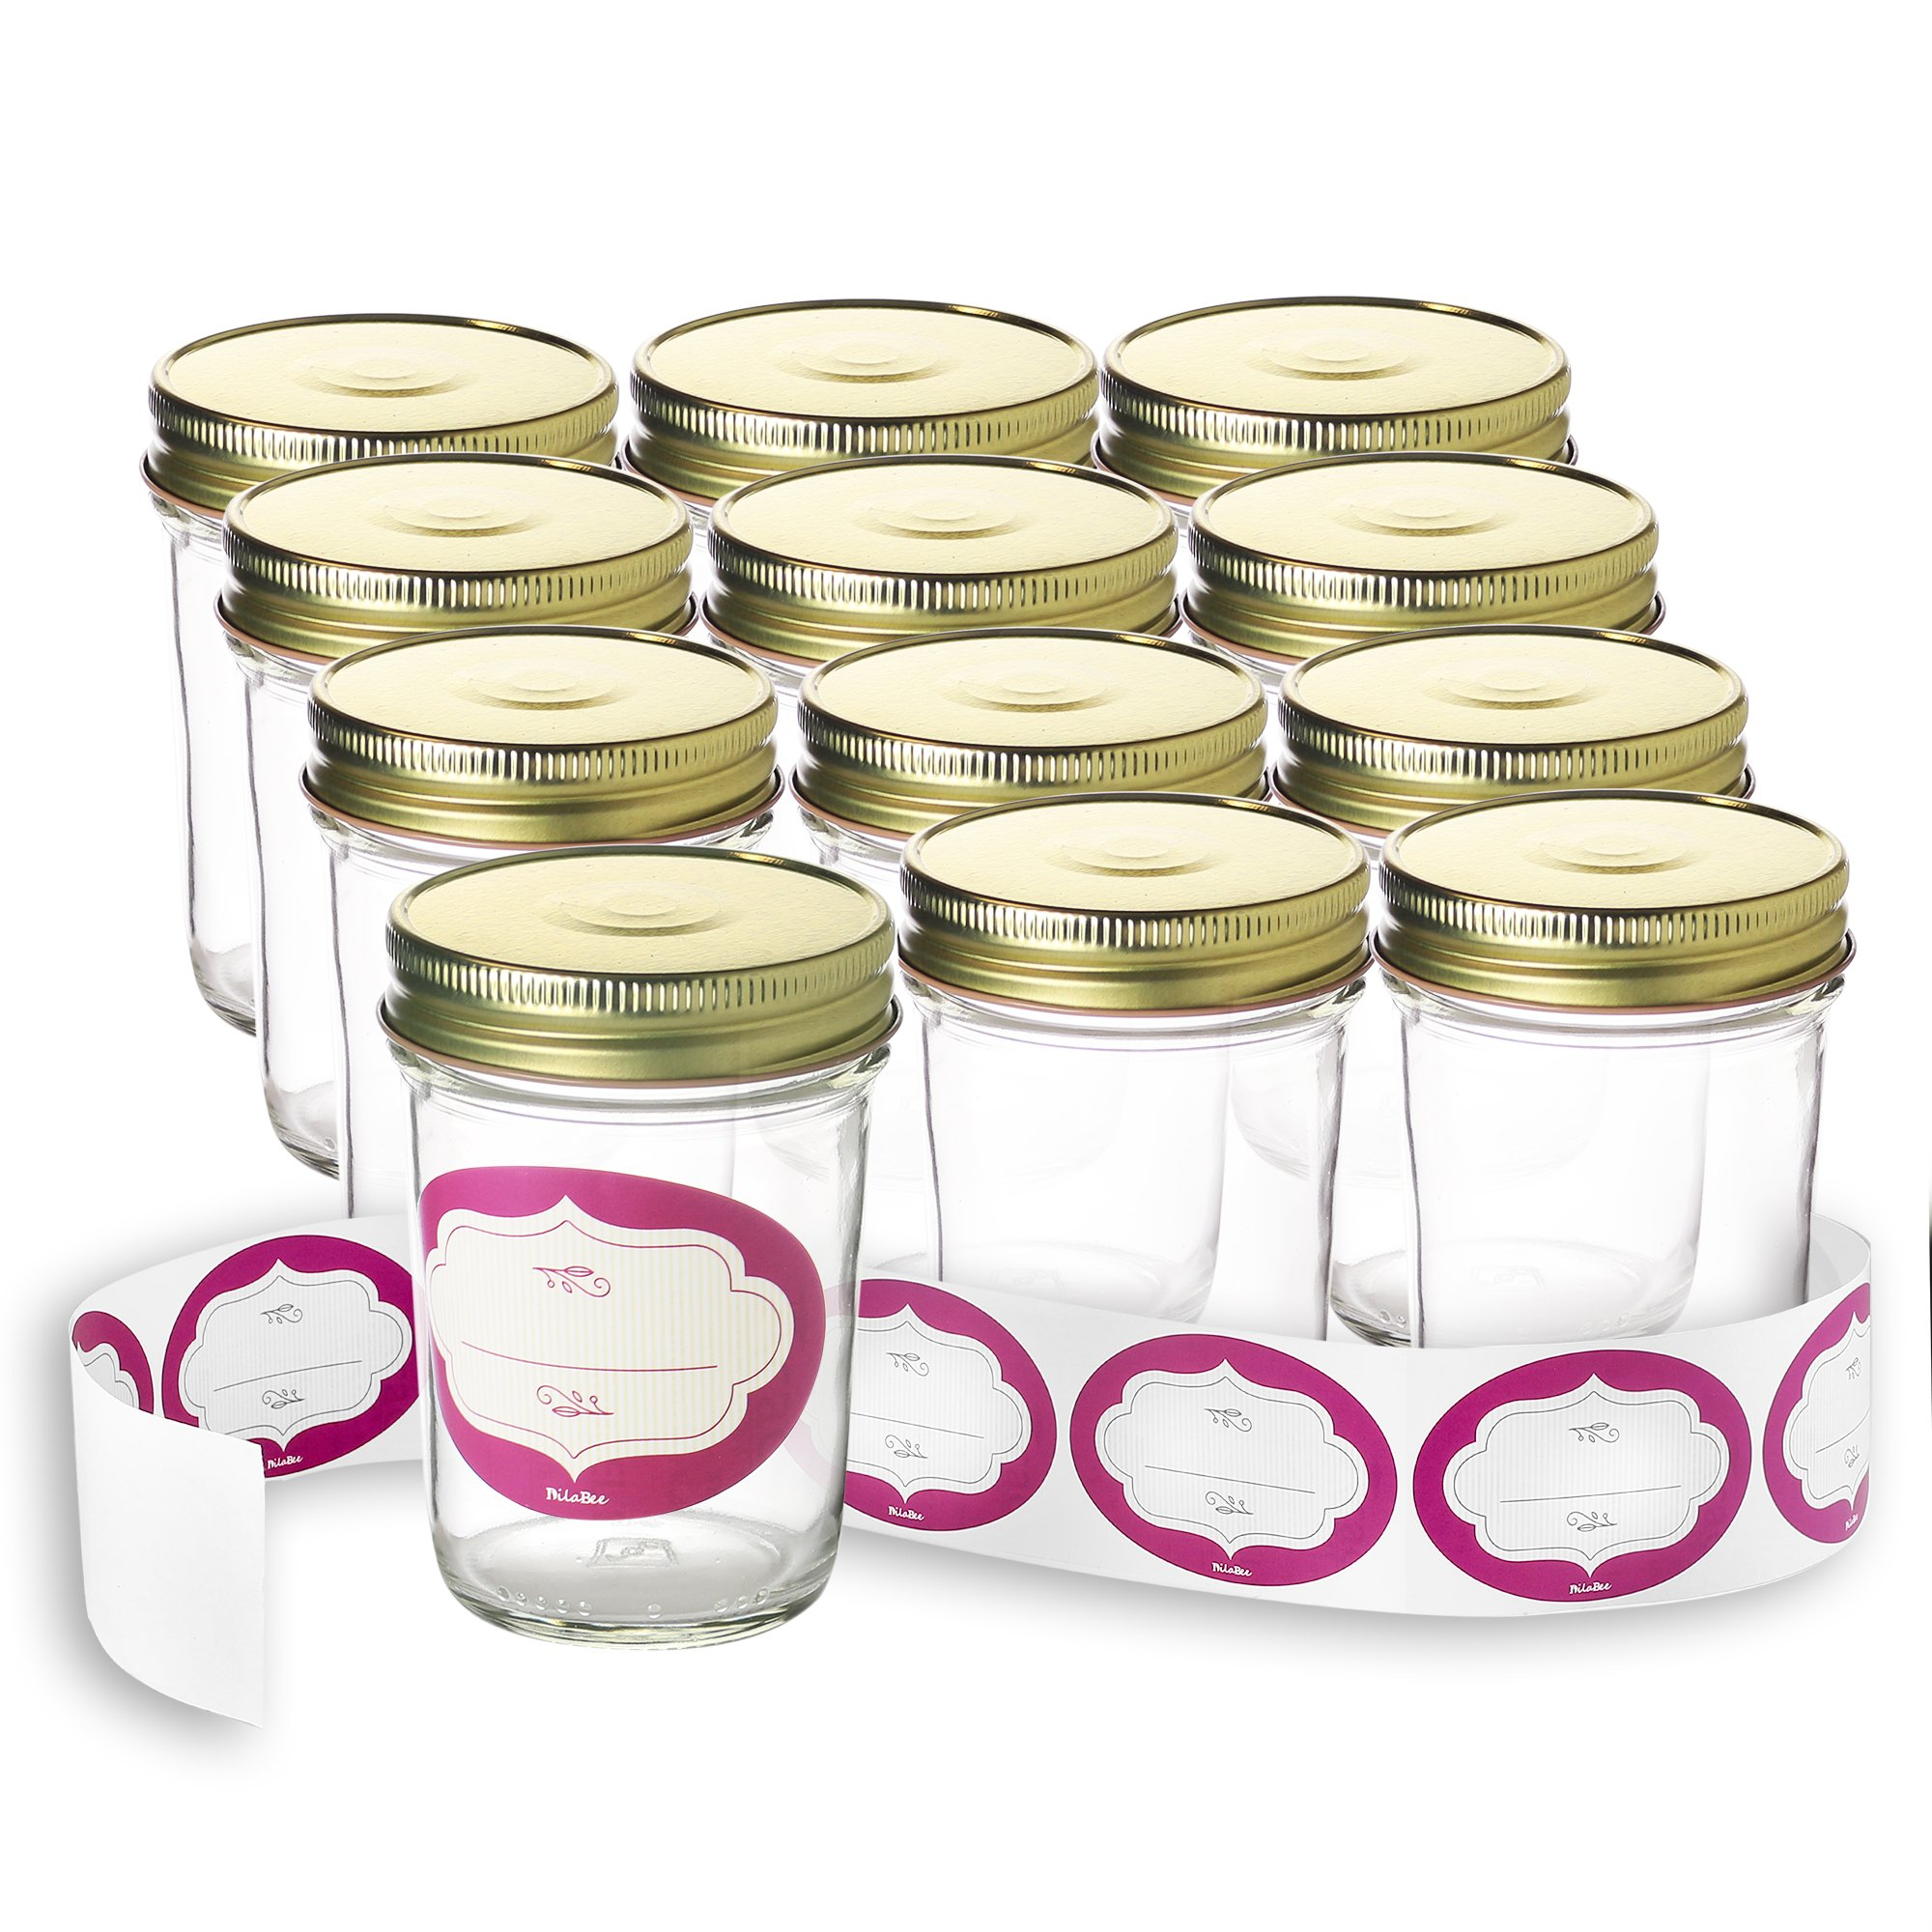 Case of 12-8 Ounce Glass Mason Jars with Gold Lids and Labels Perfect for Home Canning, Pickling, Gifts, Presentation, Baby Showers, Baby Food Storage, Wedding Favors, Juicing, Housewarming, Pantry